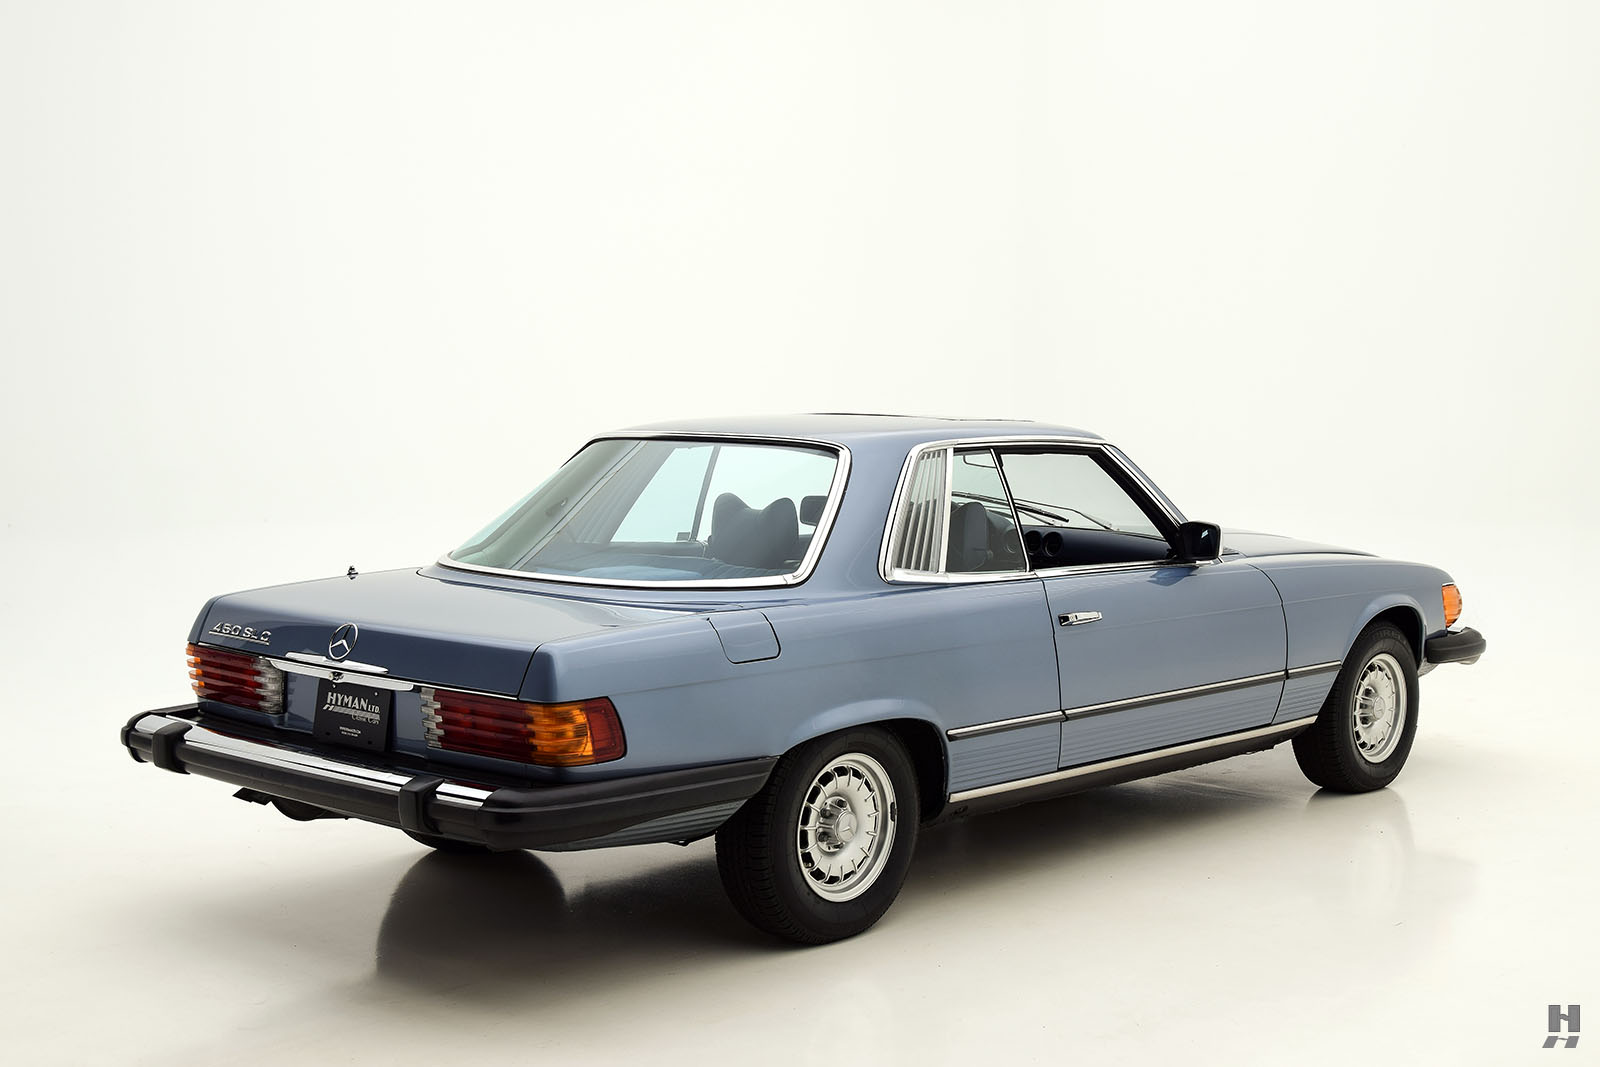 1979 mercedes benz 450slc coupe for sale buy classic car for Buy classic mercedes benz